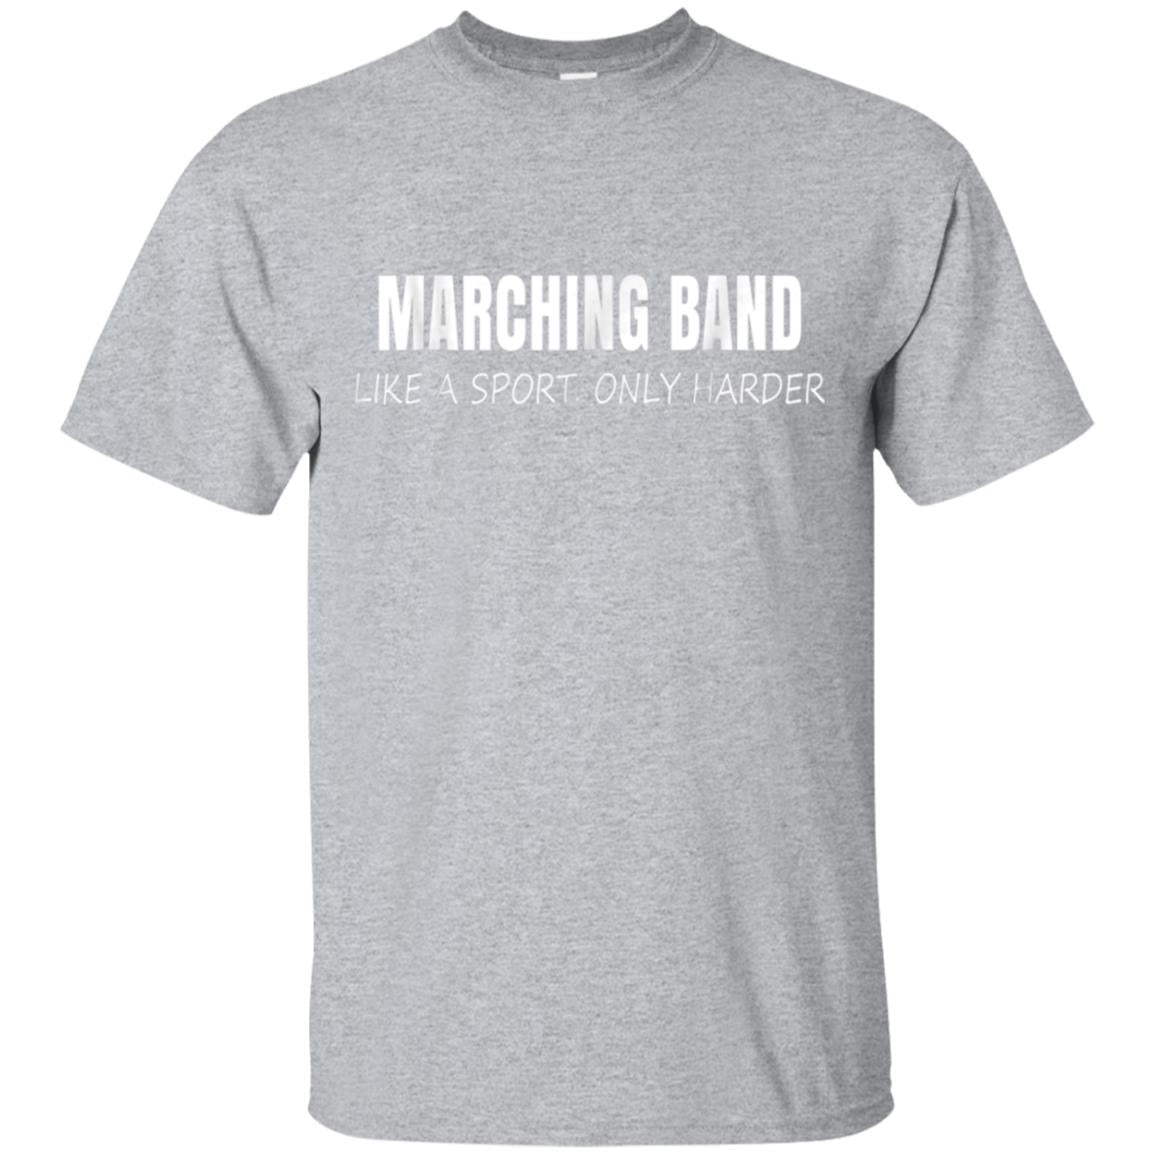 It's Like a Sport Only Harder Marching Band Themed T-Shirt 99promocode